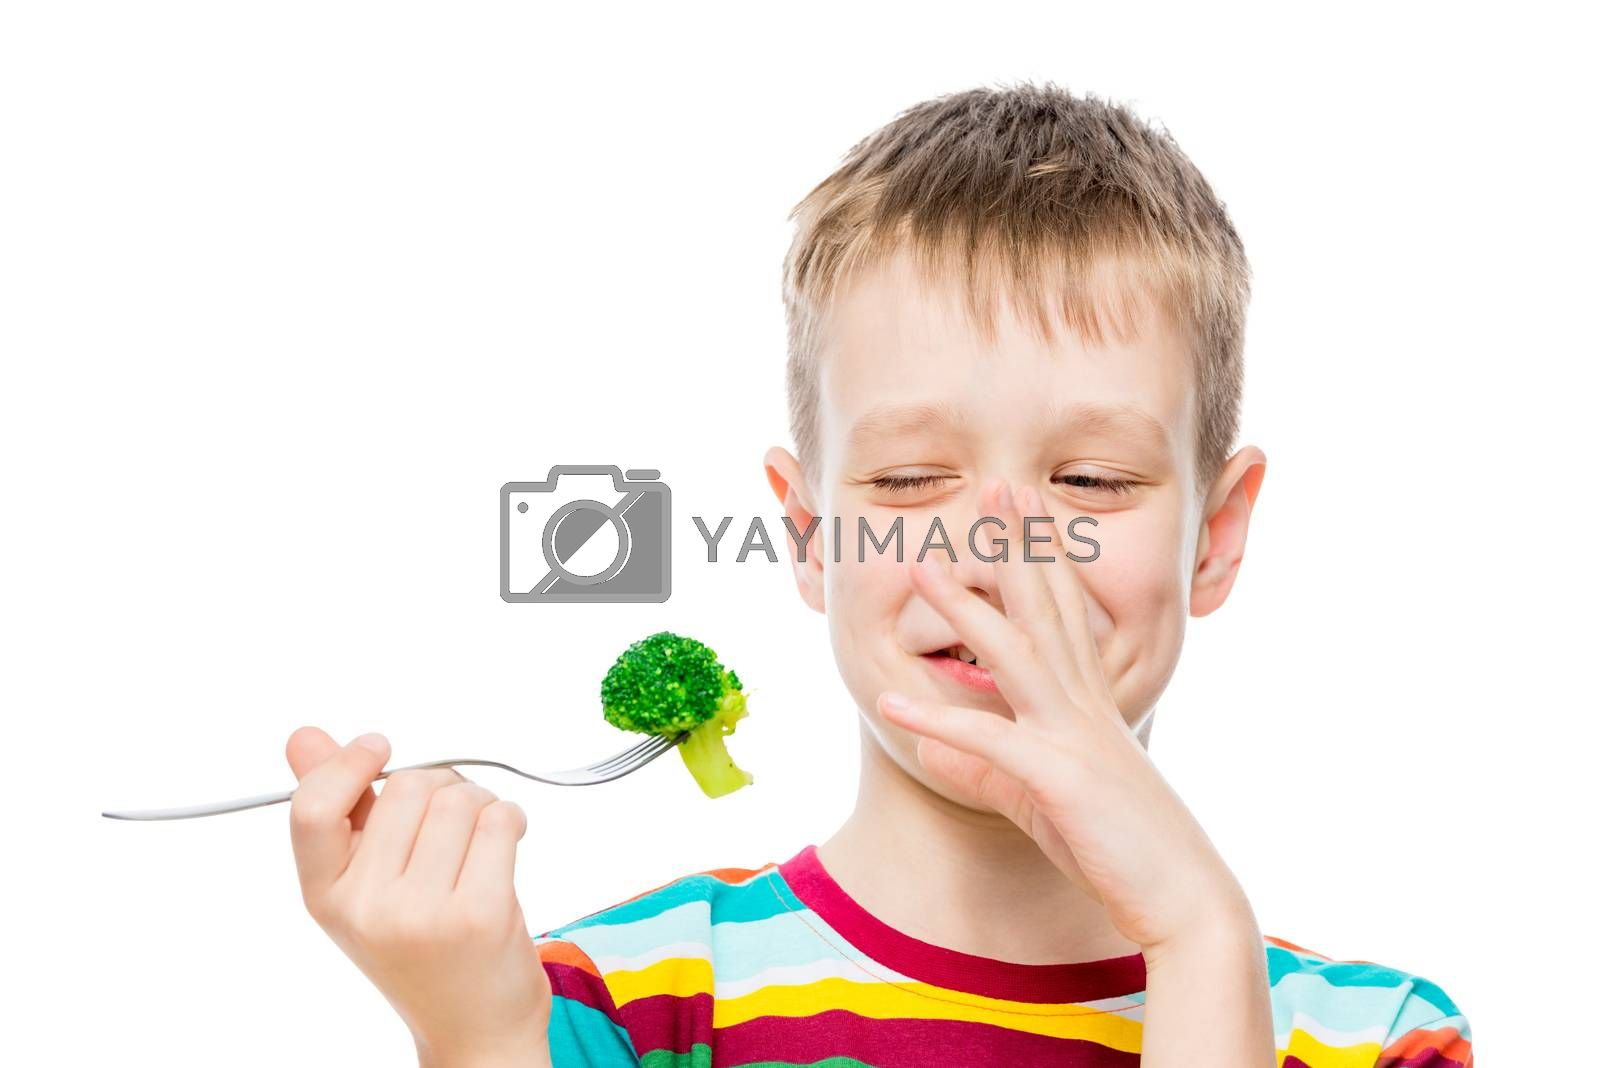 The boy with contempt looks at broccoli, portrait is isolated on white background